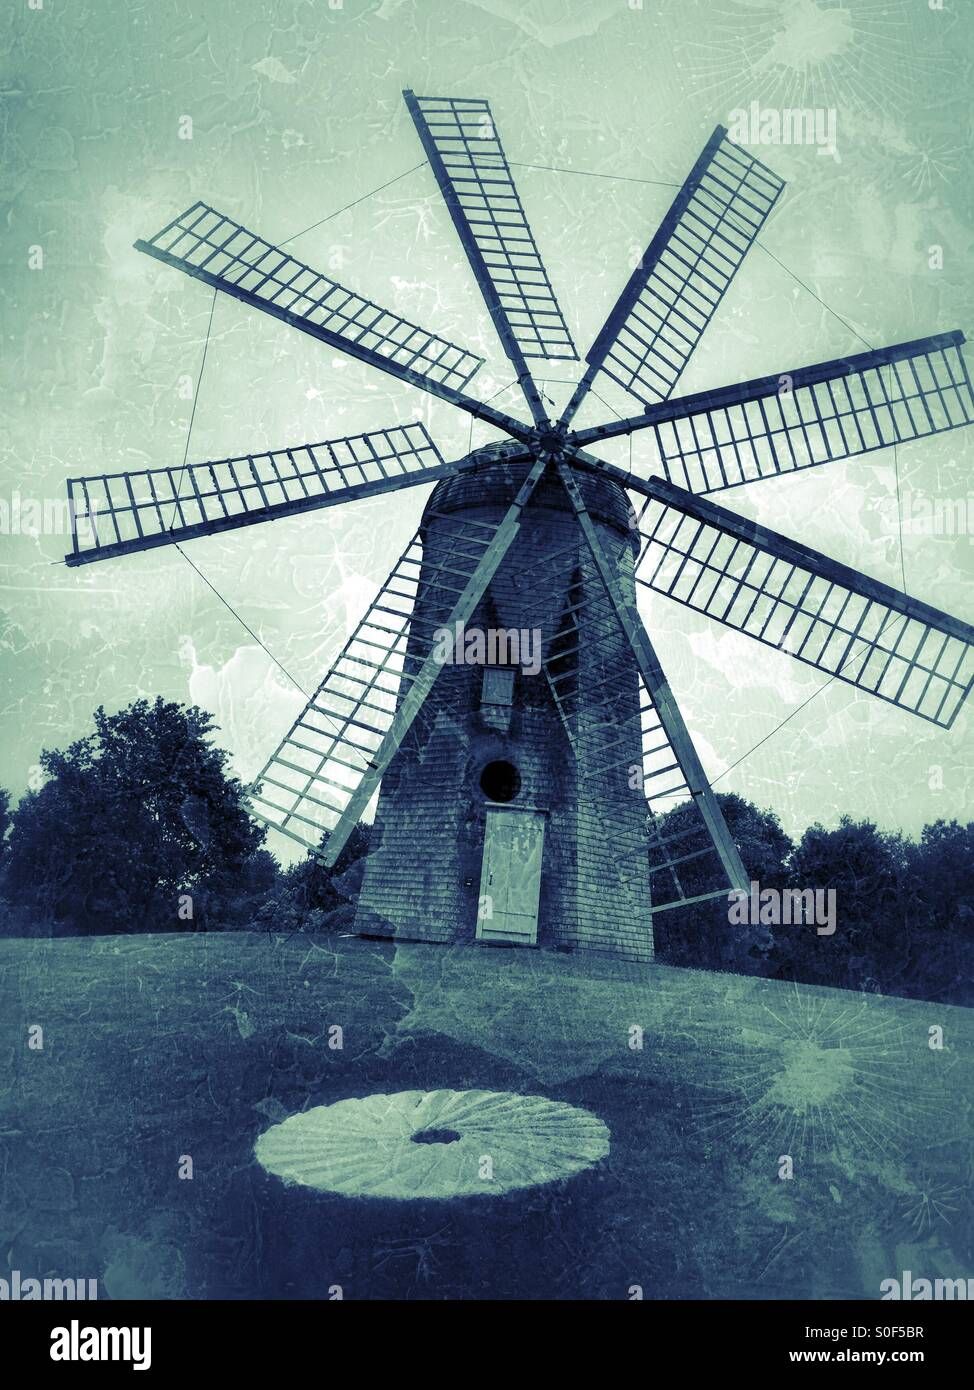 Windmill built in 1810 for grinding grains - Stock Image